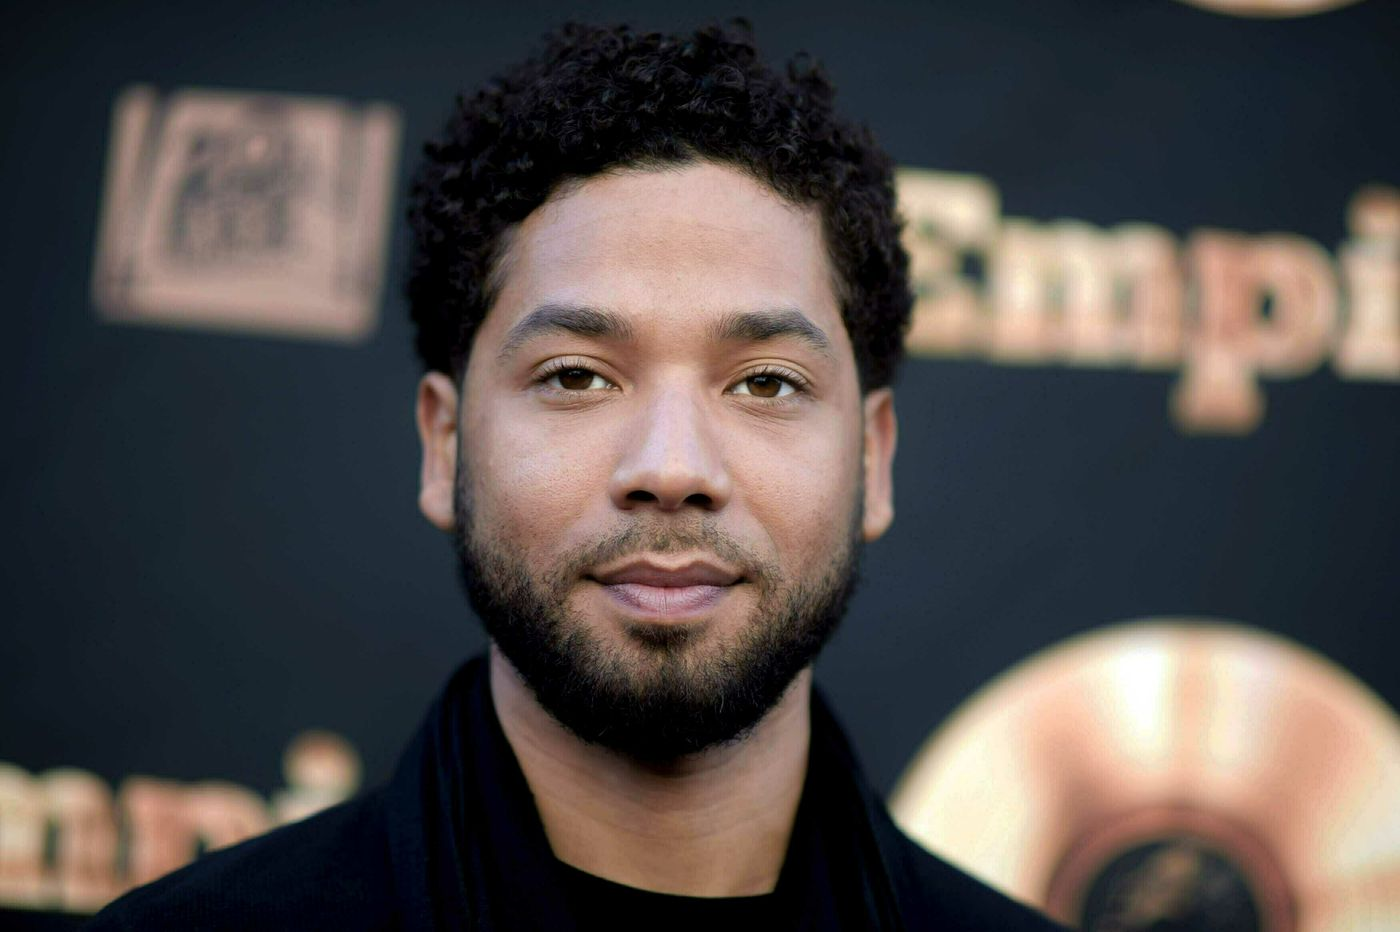 Chicago's top cop blasts Jussie Smollett; bond set at $100,000